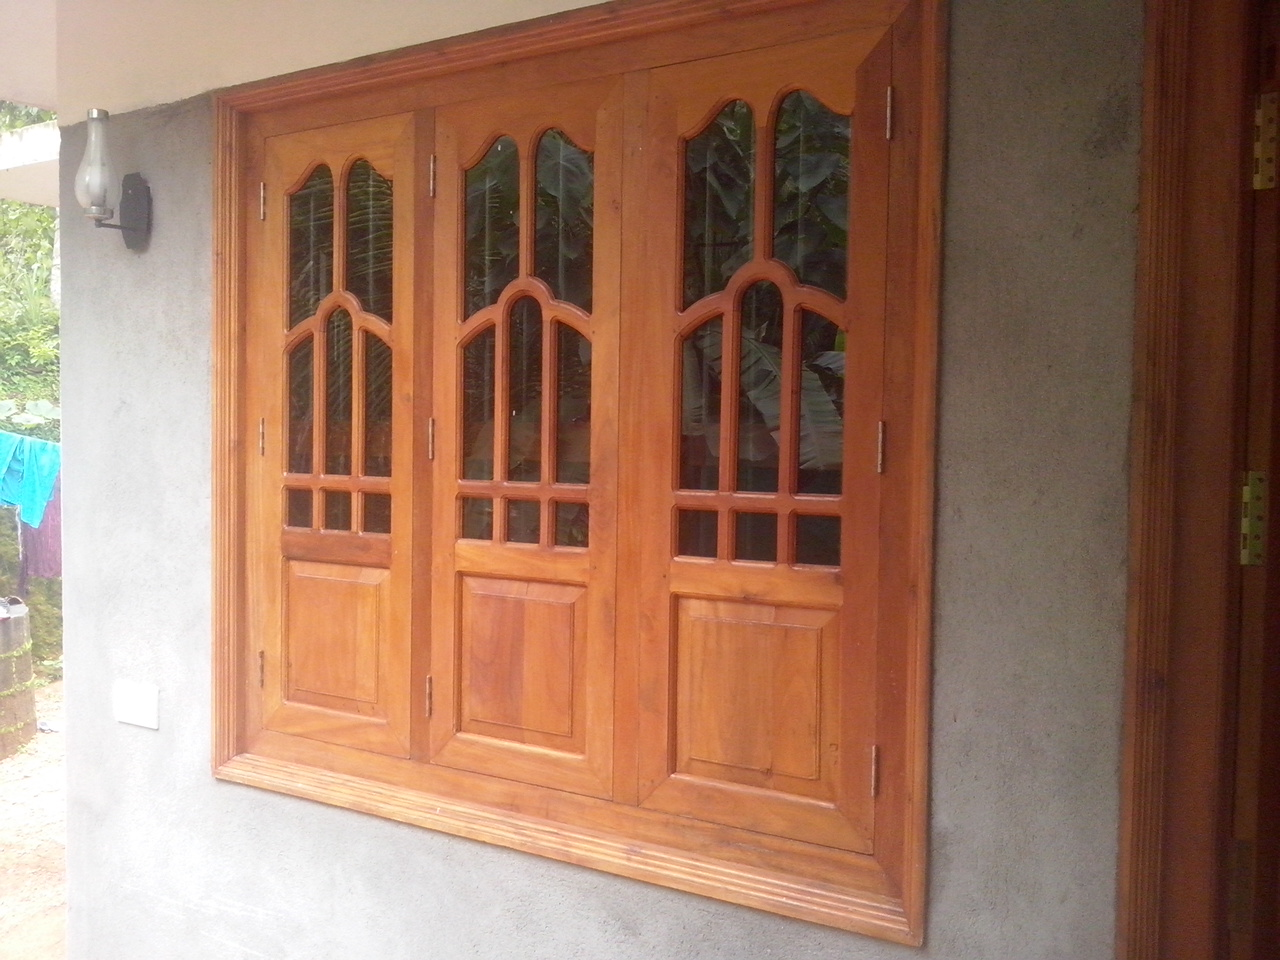 Bavas wood works kerala style wooden window door designs for Window glass design in kerala